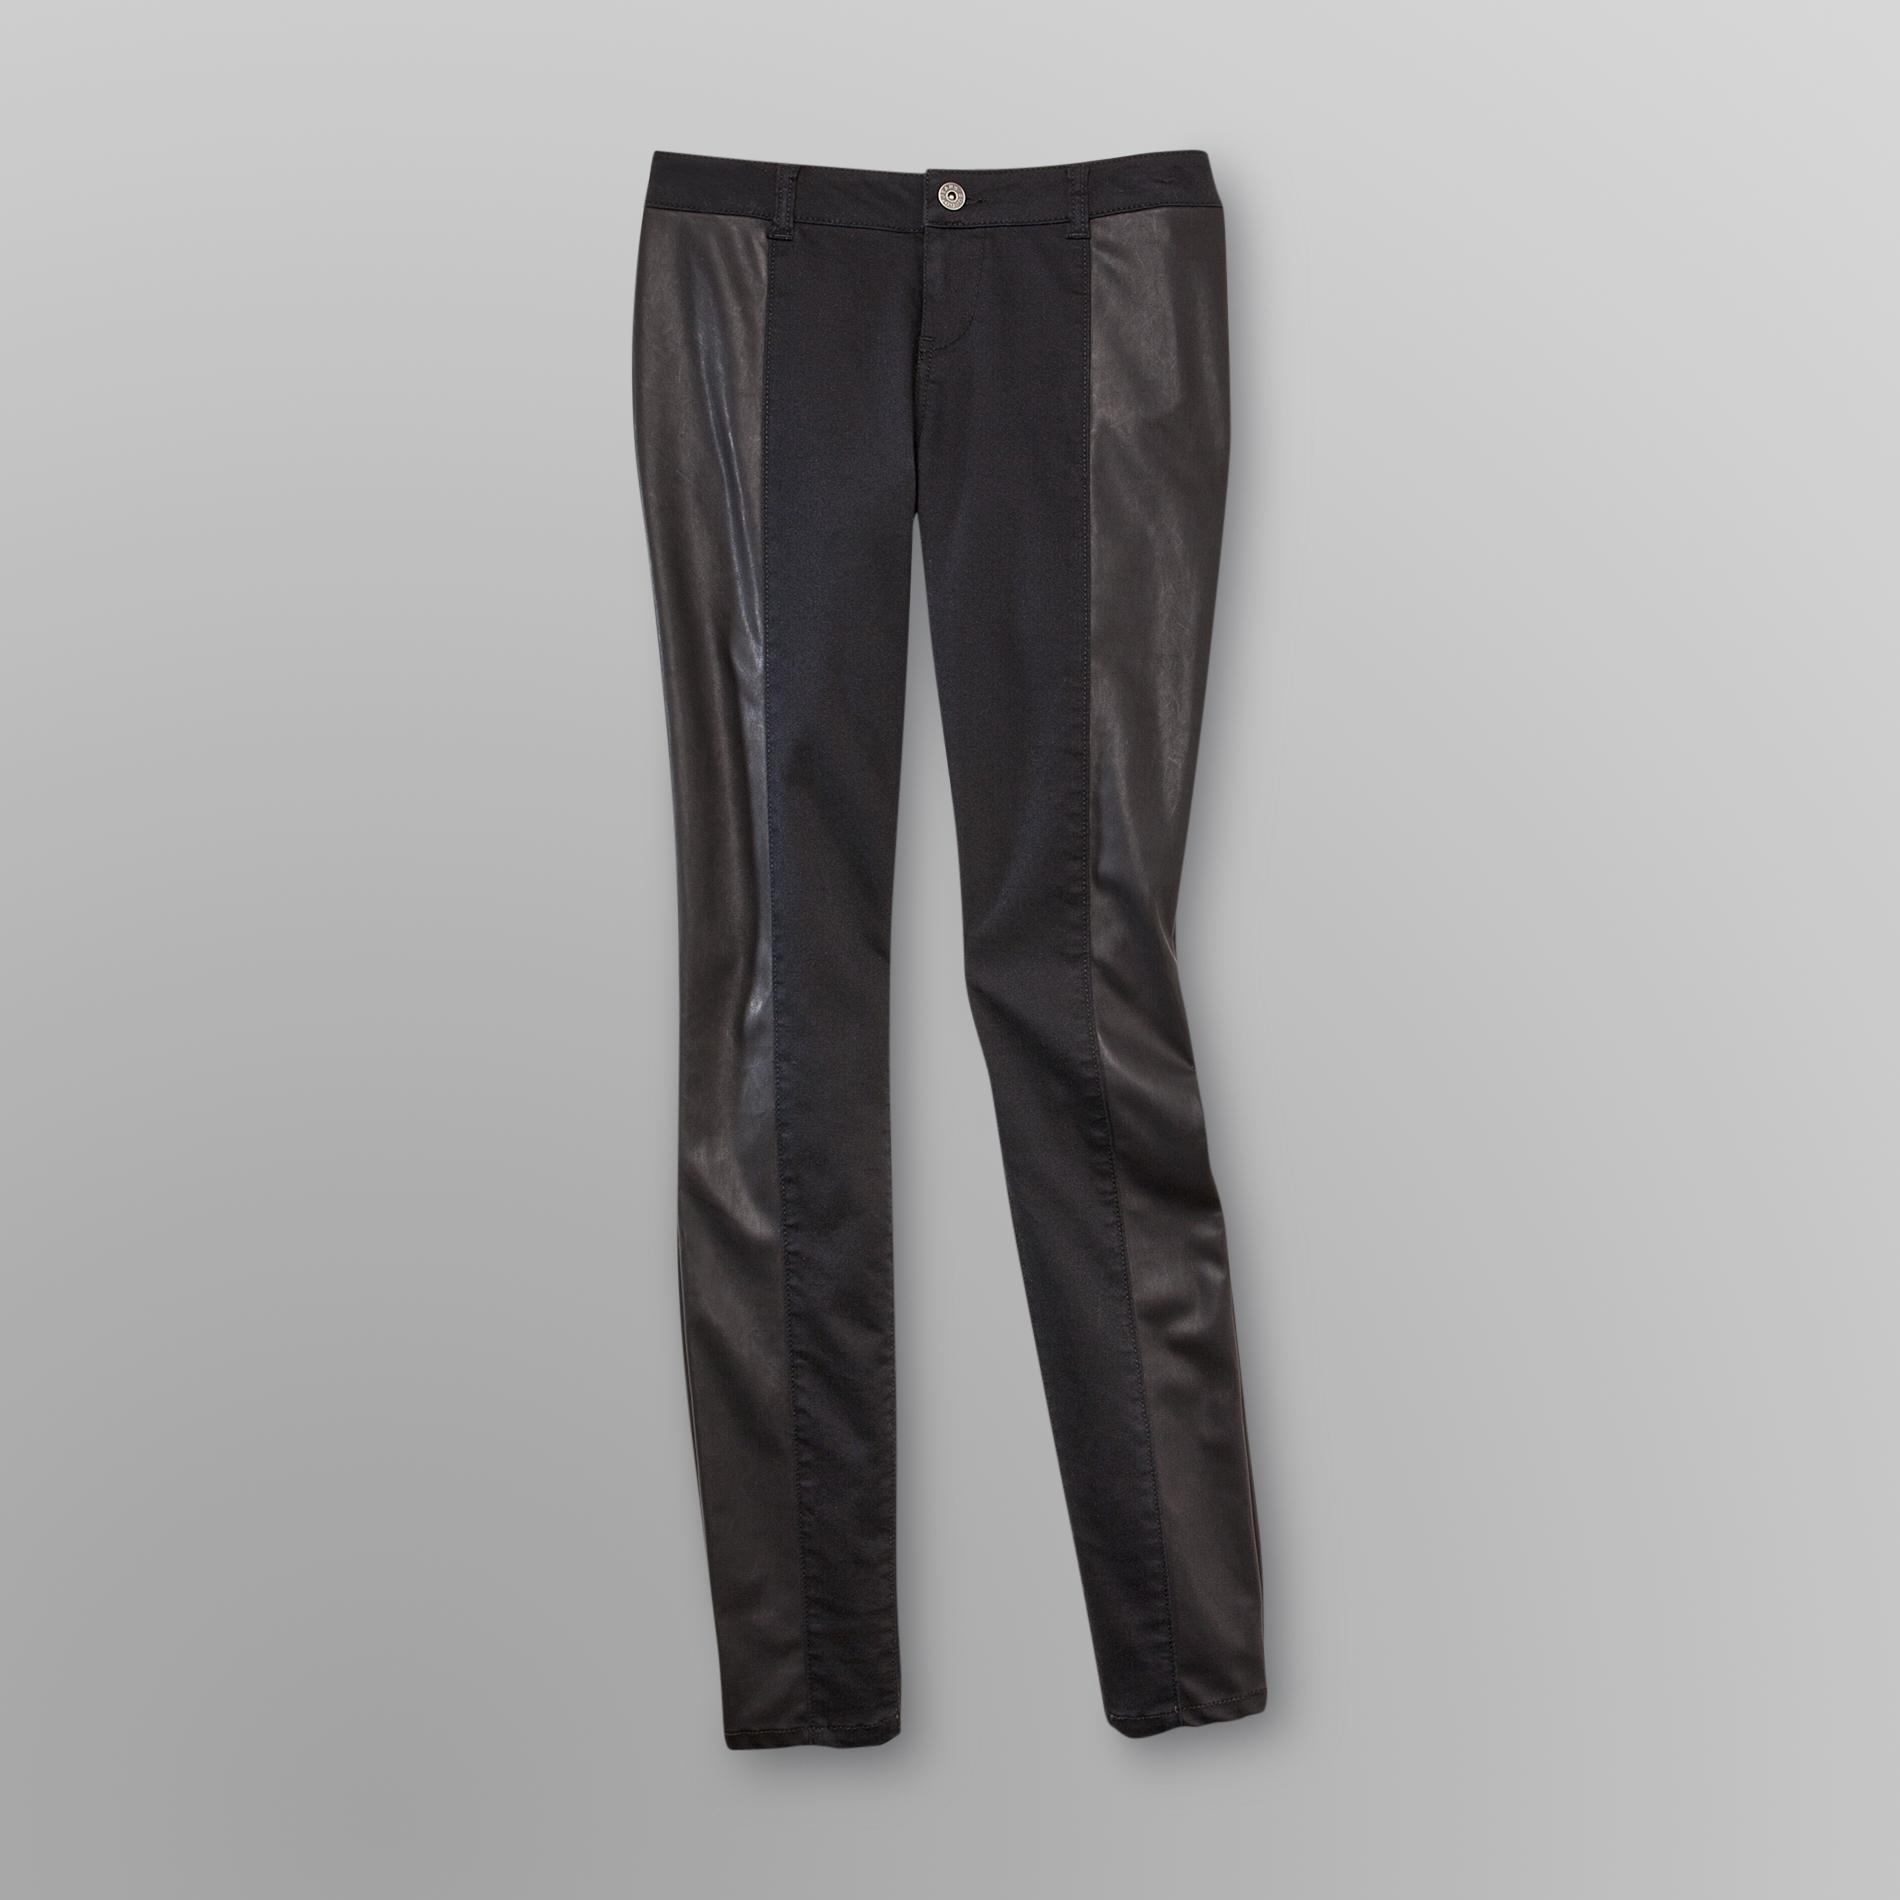 Bongo Junior's Jeggings - Faux Leather at Sears.com